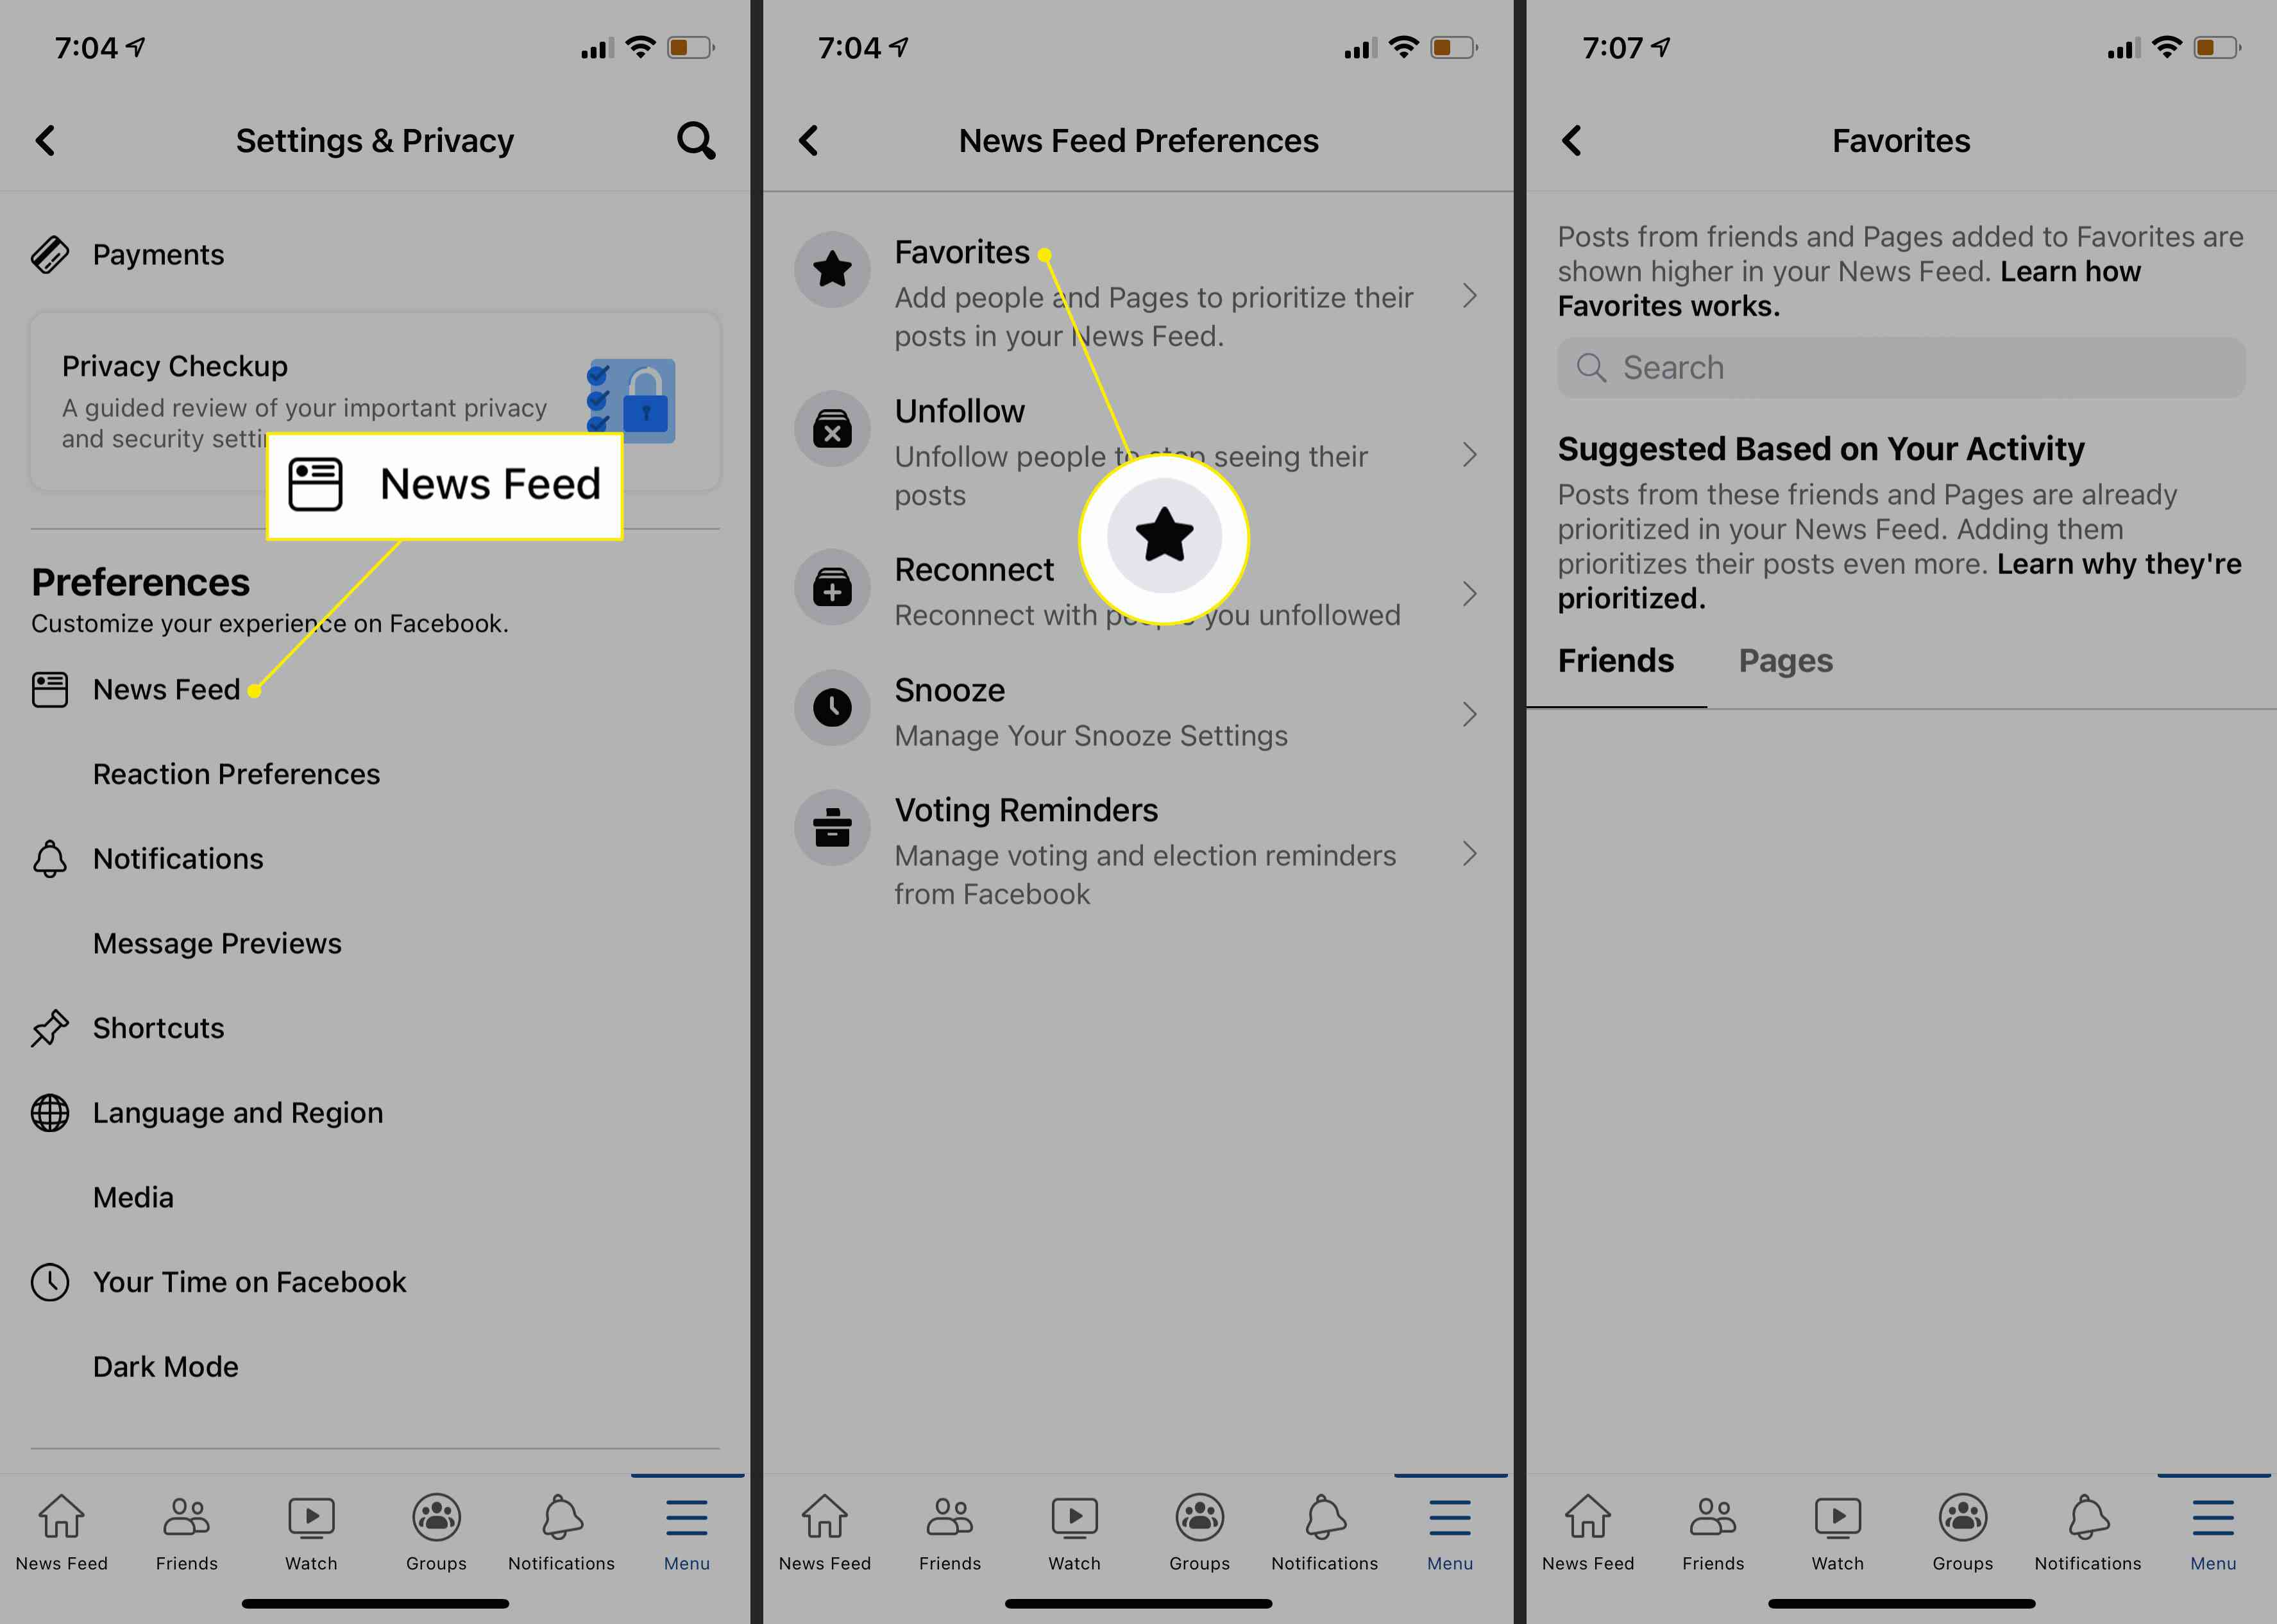 News Feed and Favorites settings in the Facebook iOS app